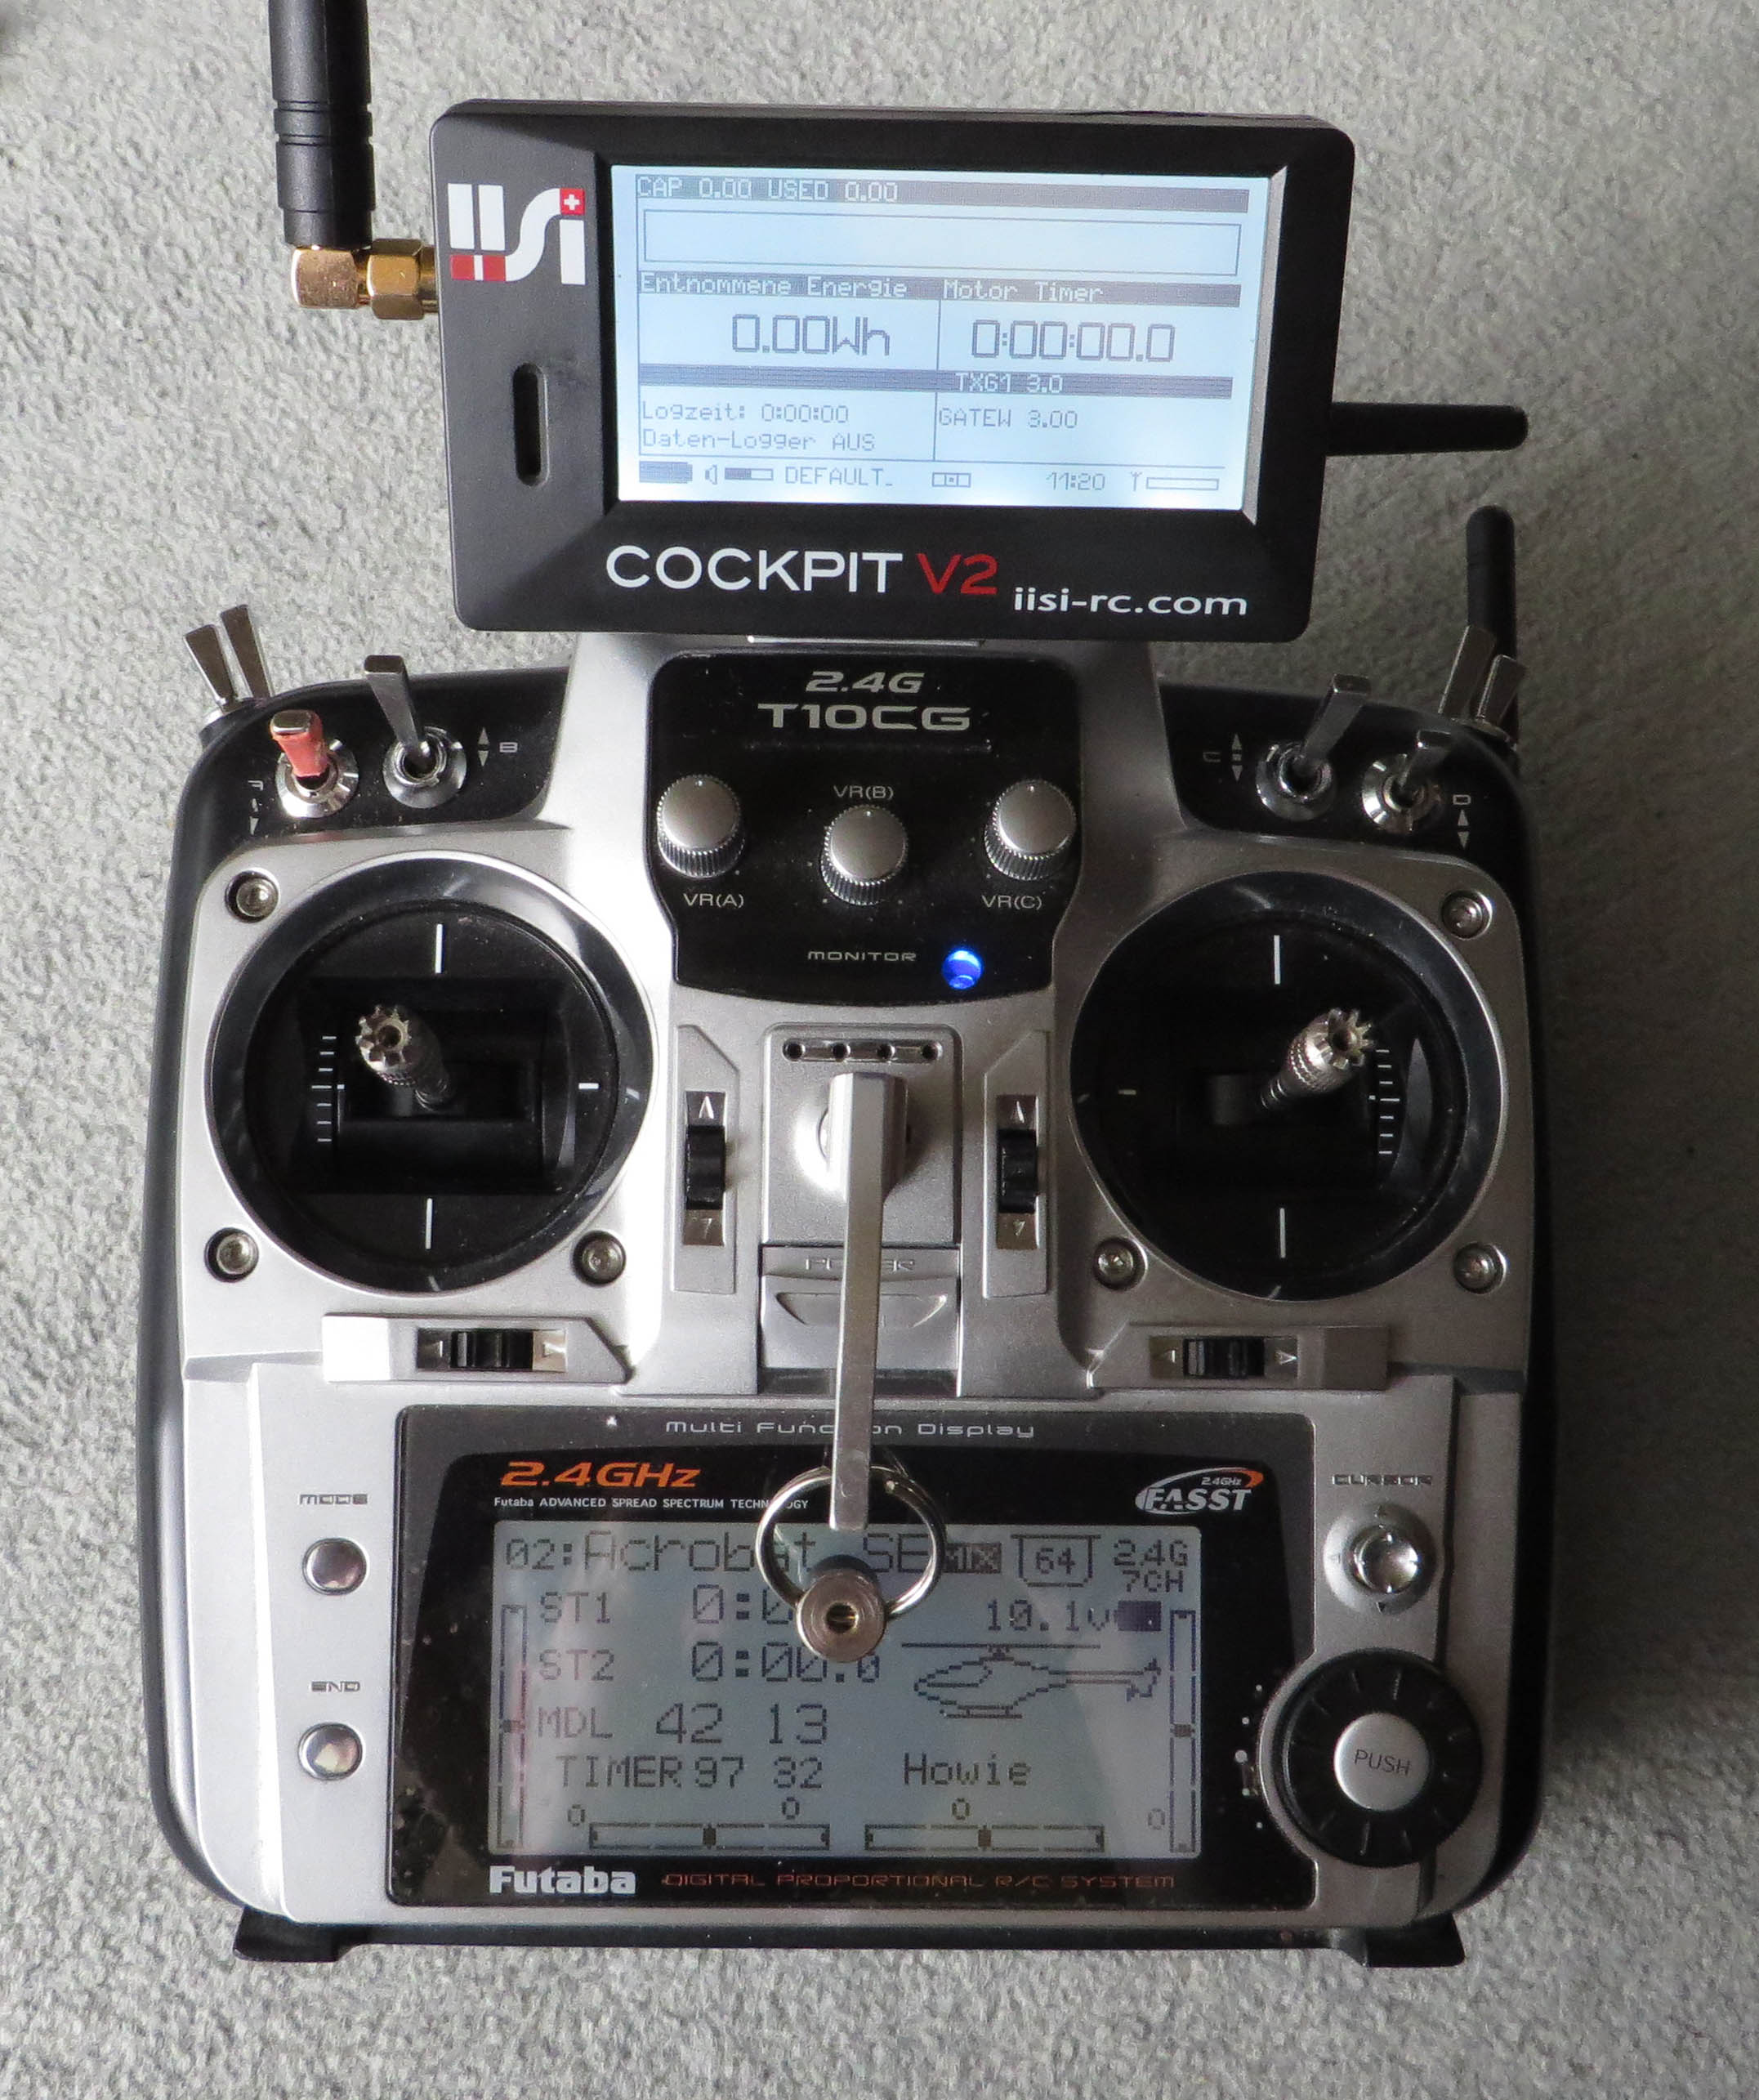 Which new transmitter to choose for using telemetry?